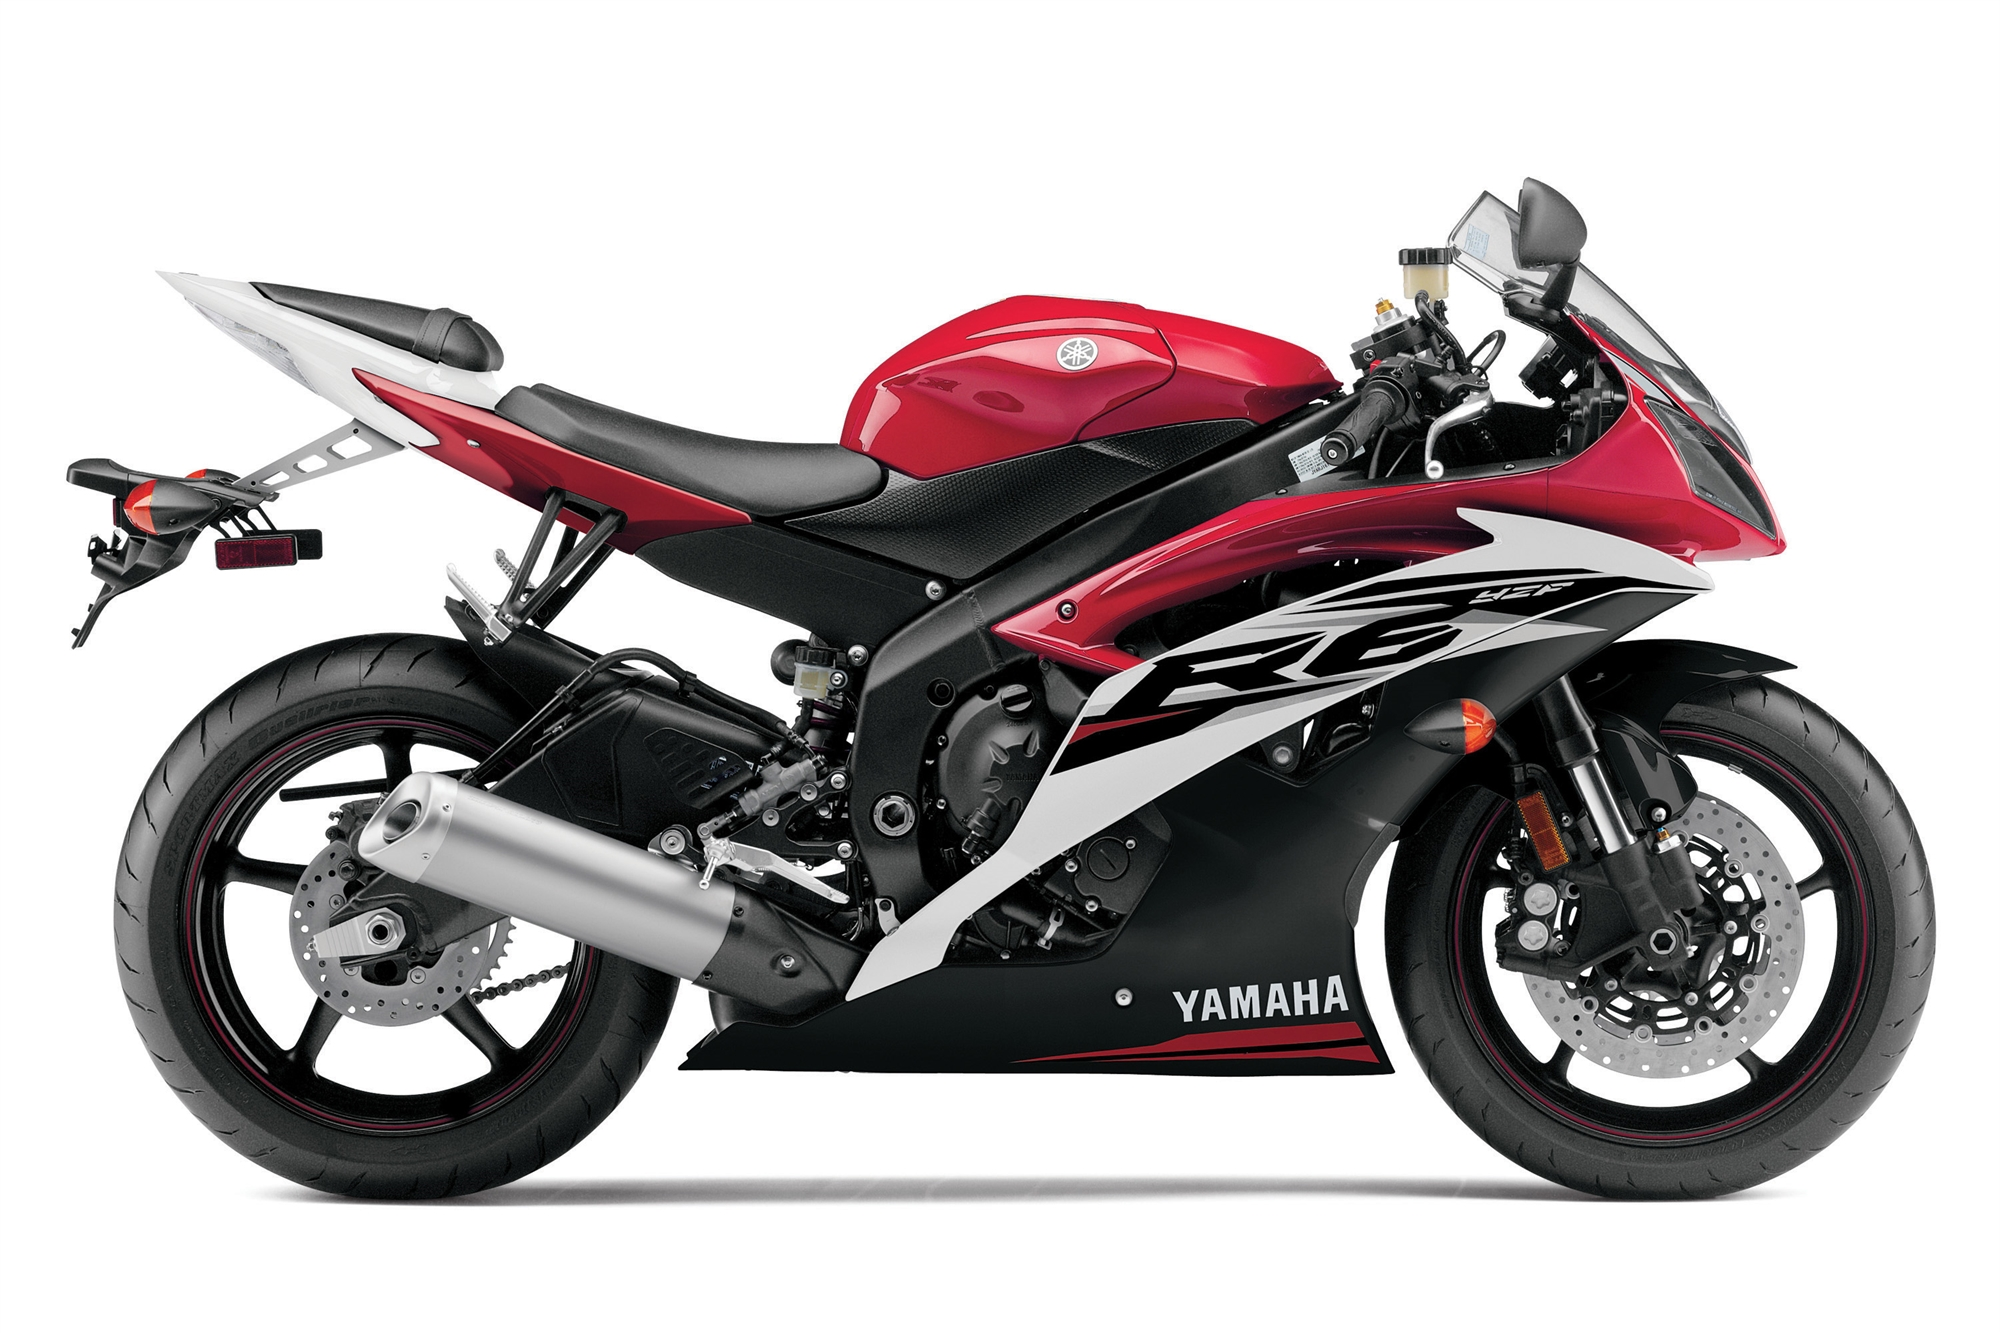 2014 yamaha yzf r6 official pics autoevolution - Image moto sportive ...